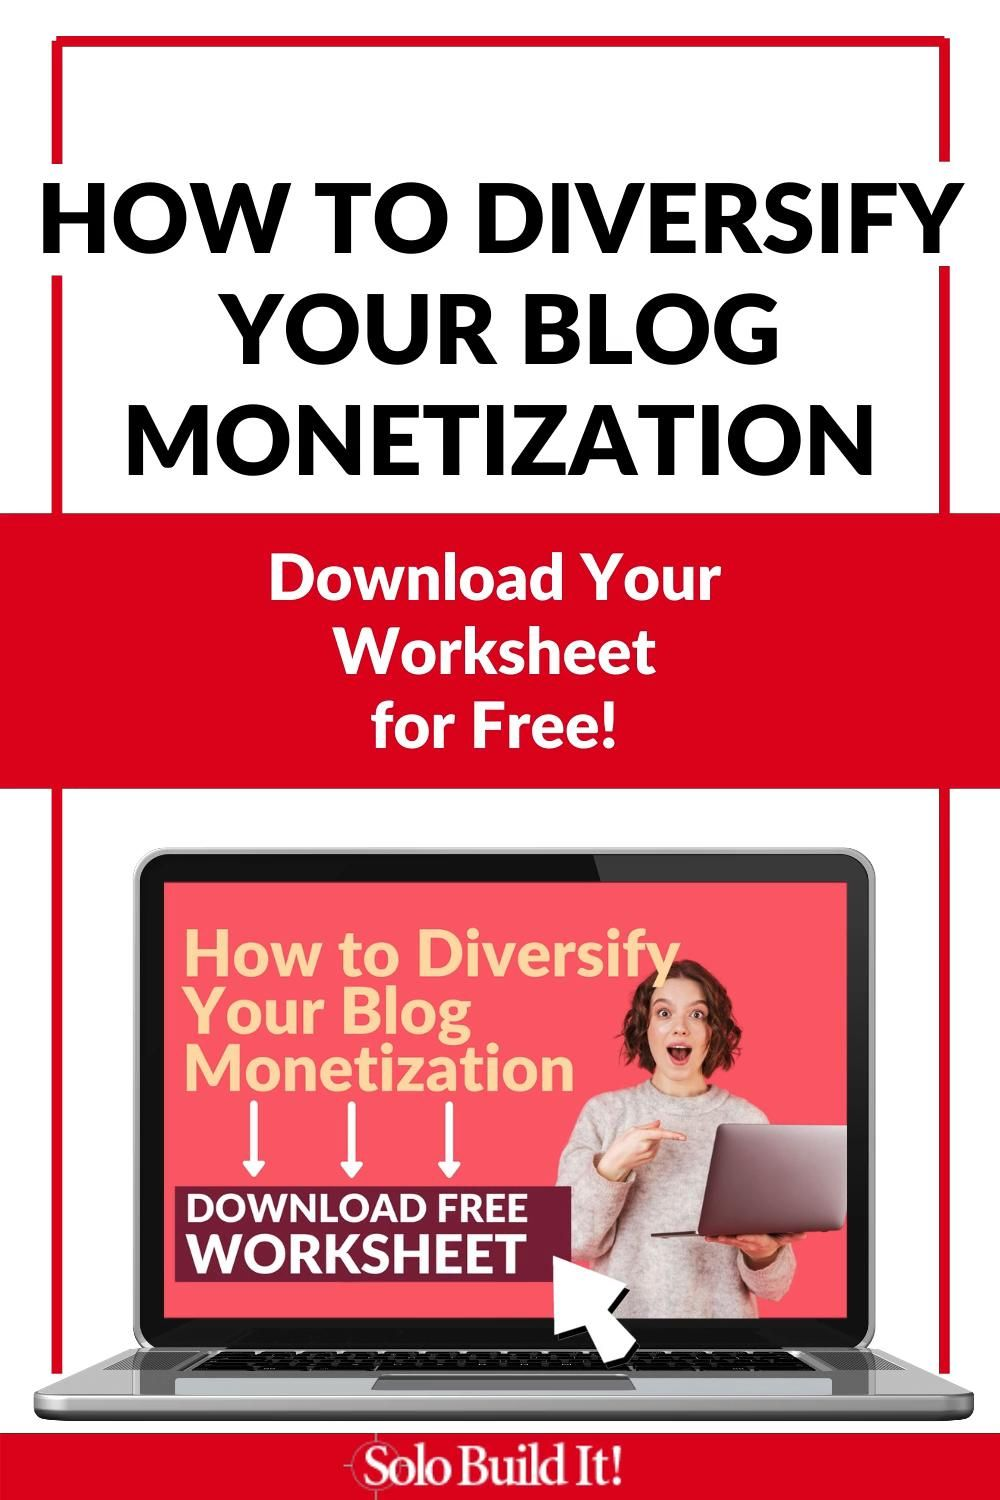 How to Diversify Your Blog Monetization